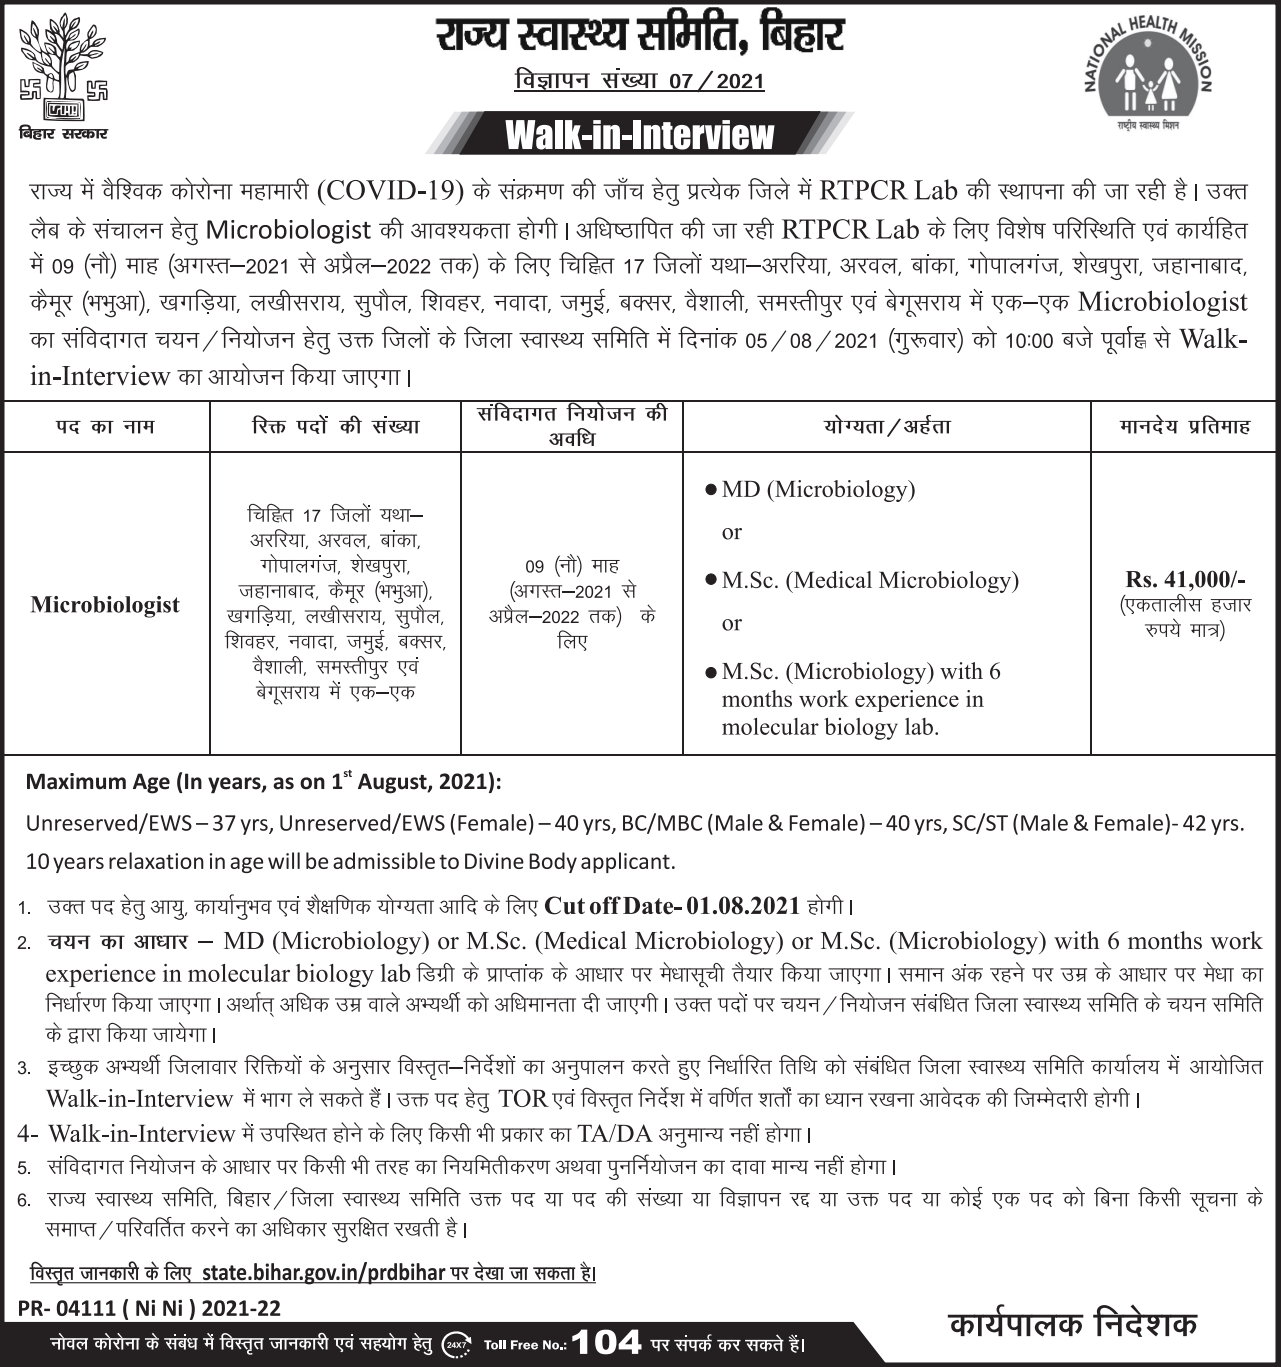 Walk-in-Interview for Microbiologist in District Health Society for RTPCR Lab - 8 Days Remaining for Apply  | VIZAGSTEEL.COM | MANAGEMENT TRAINEE (TECHNICAL) VACANCY RECRUITMENT IN RINL VIZAG STEEL 2020